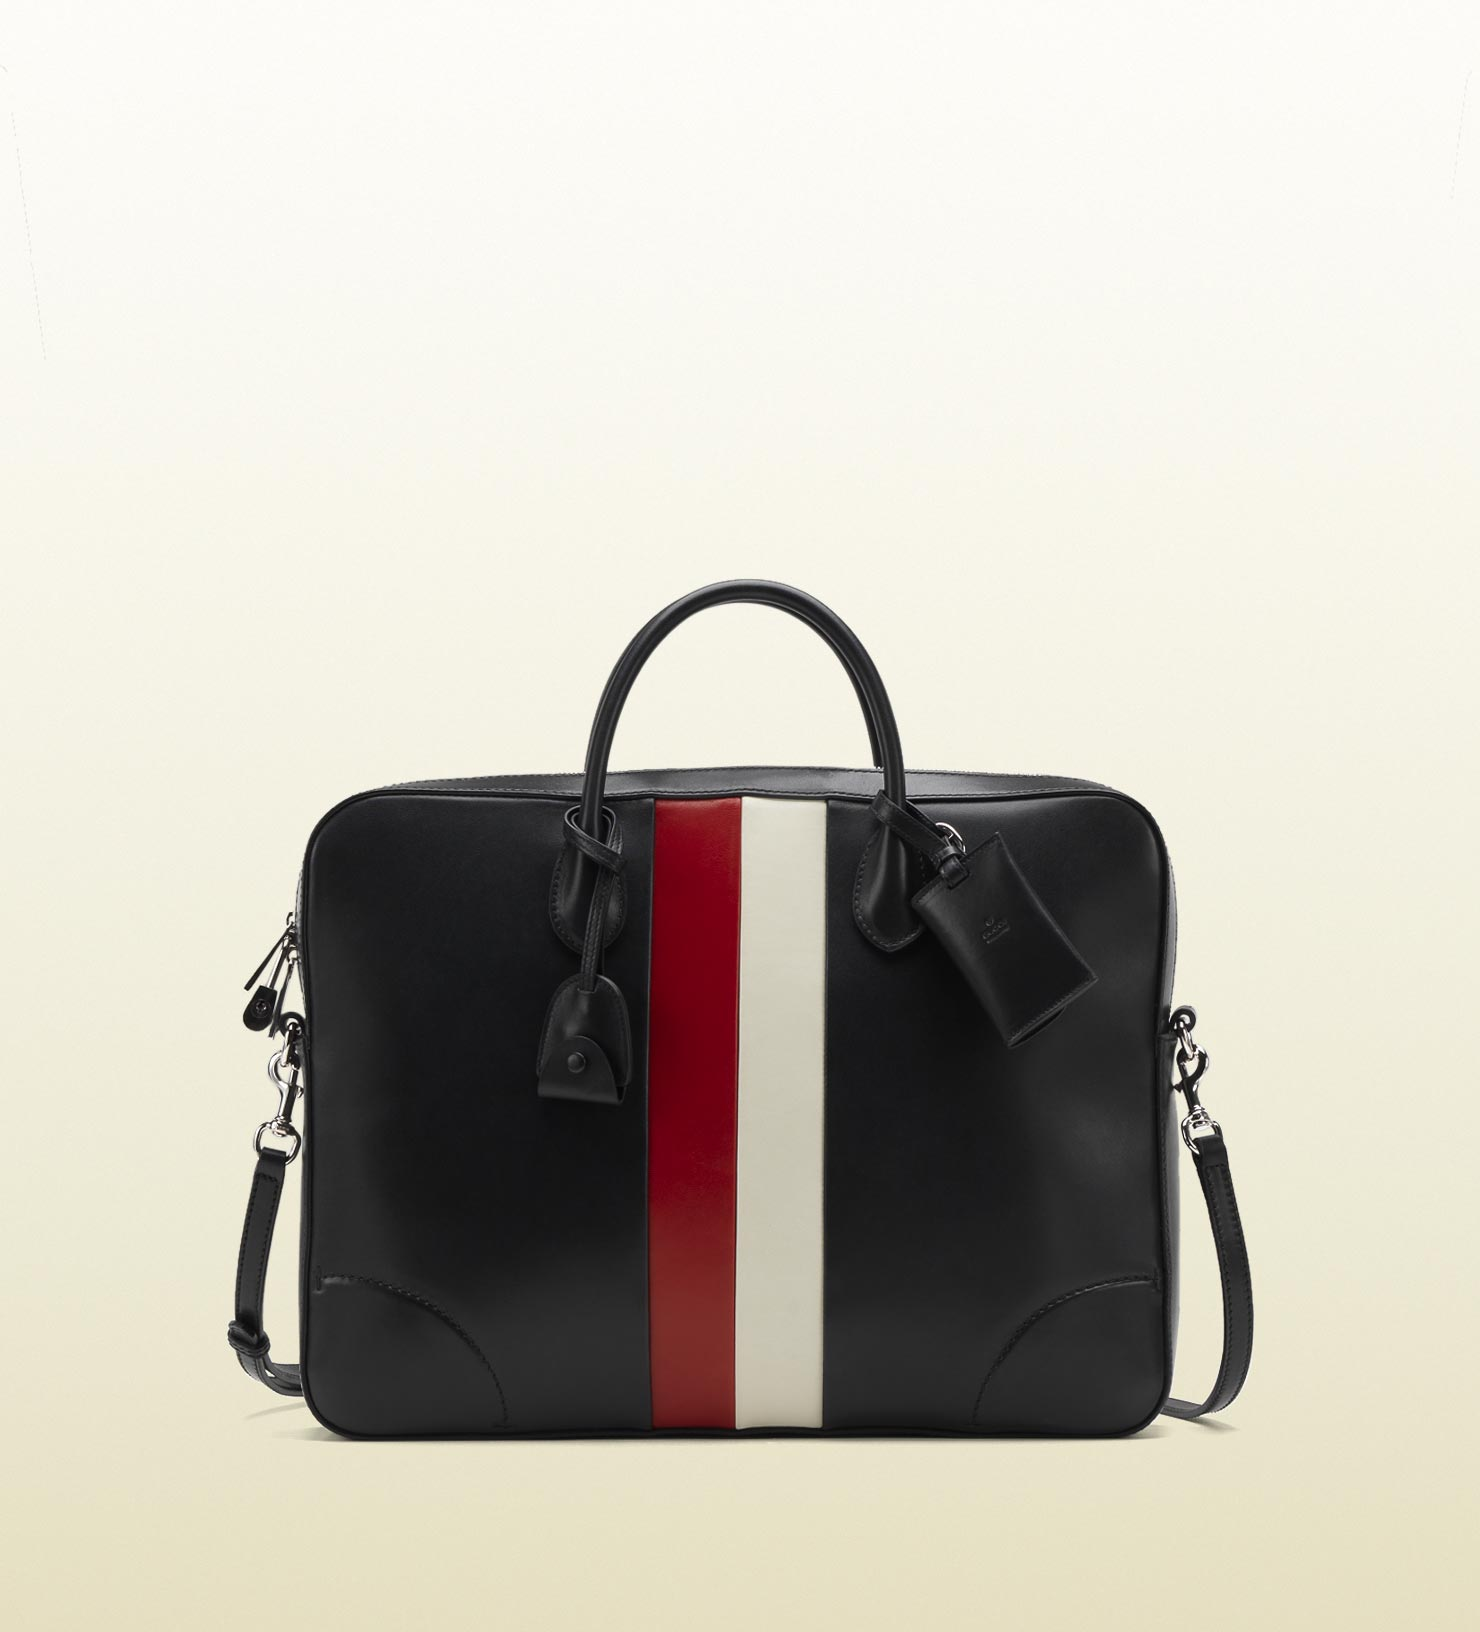 GUCCI men black leather briefcase red white 4